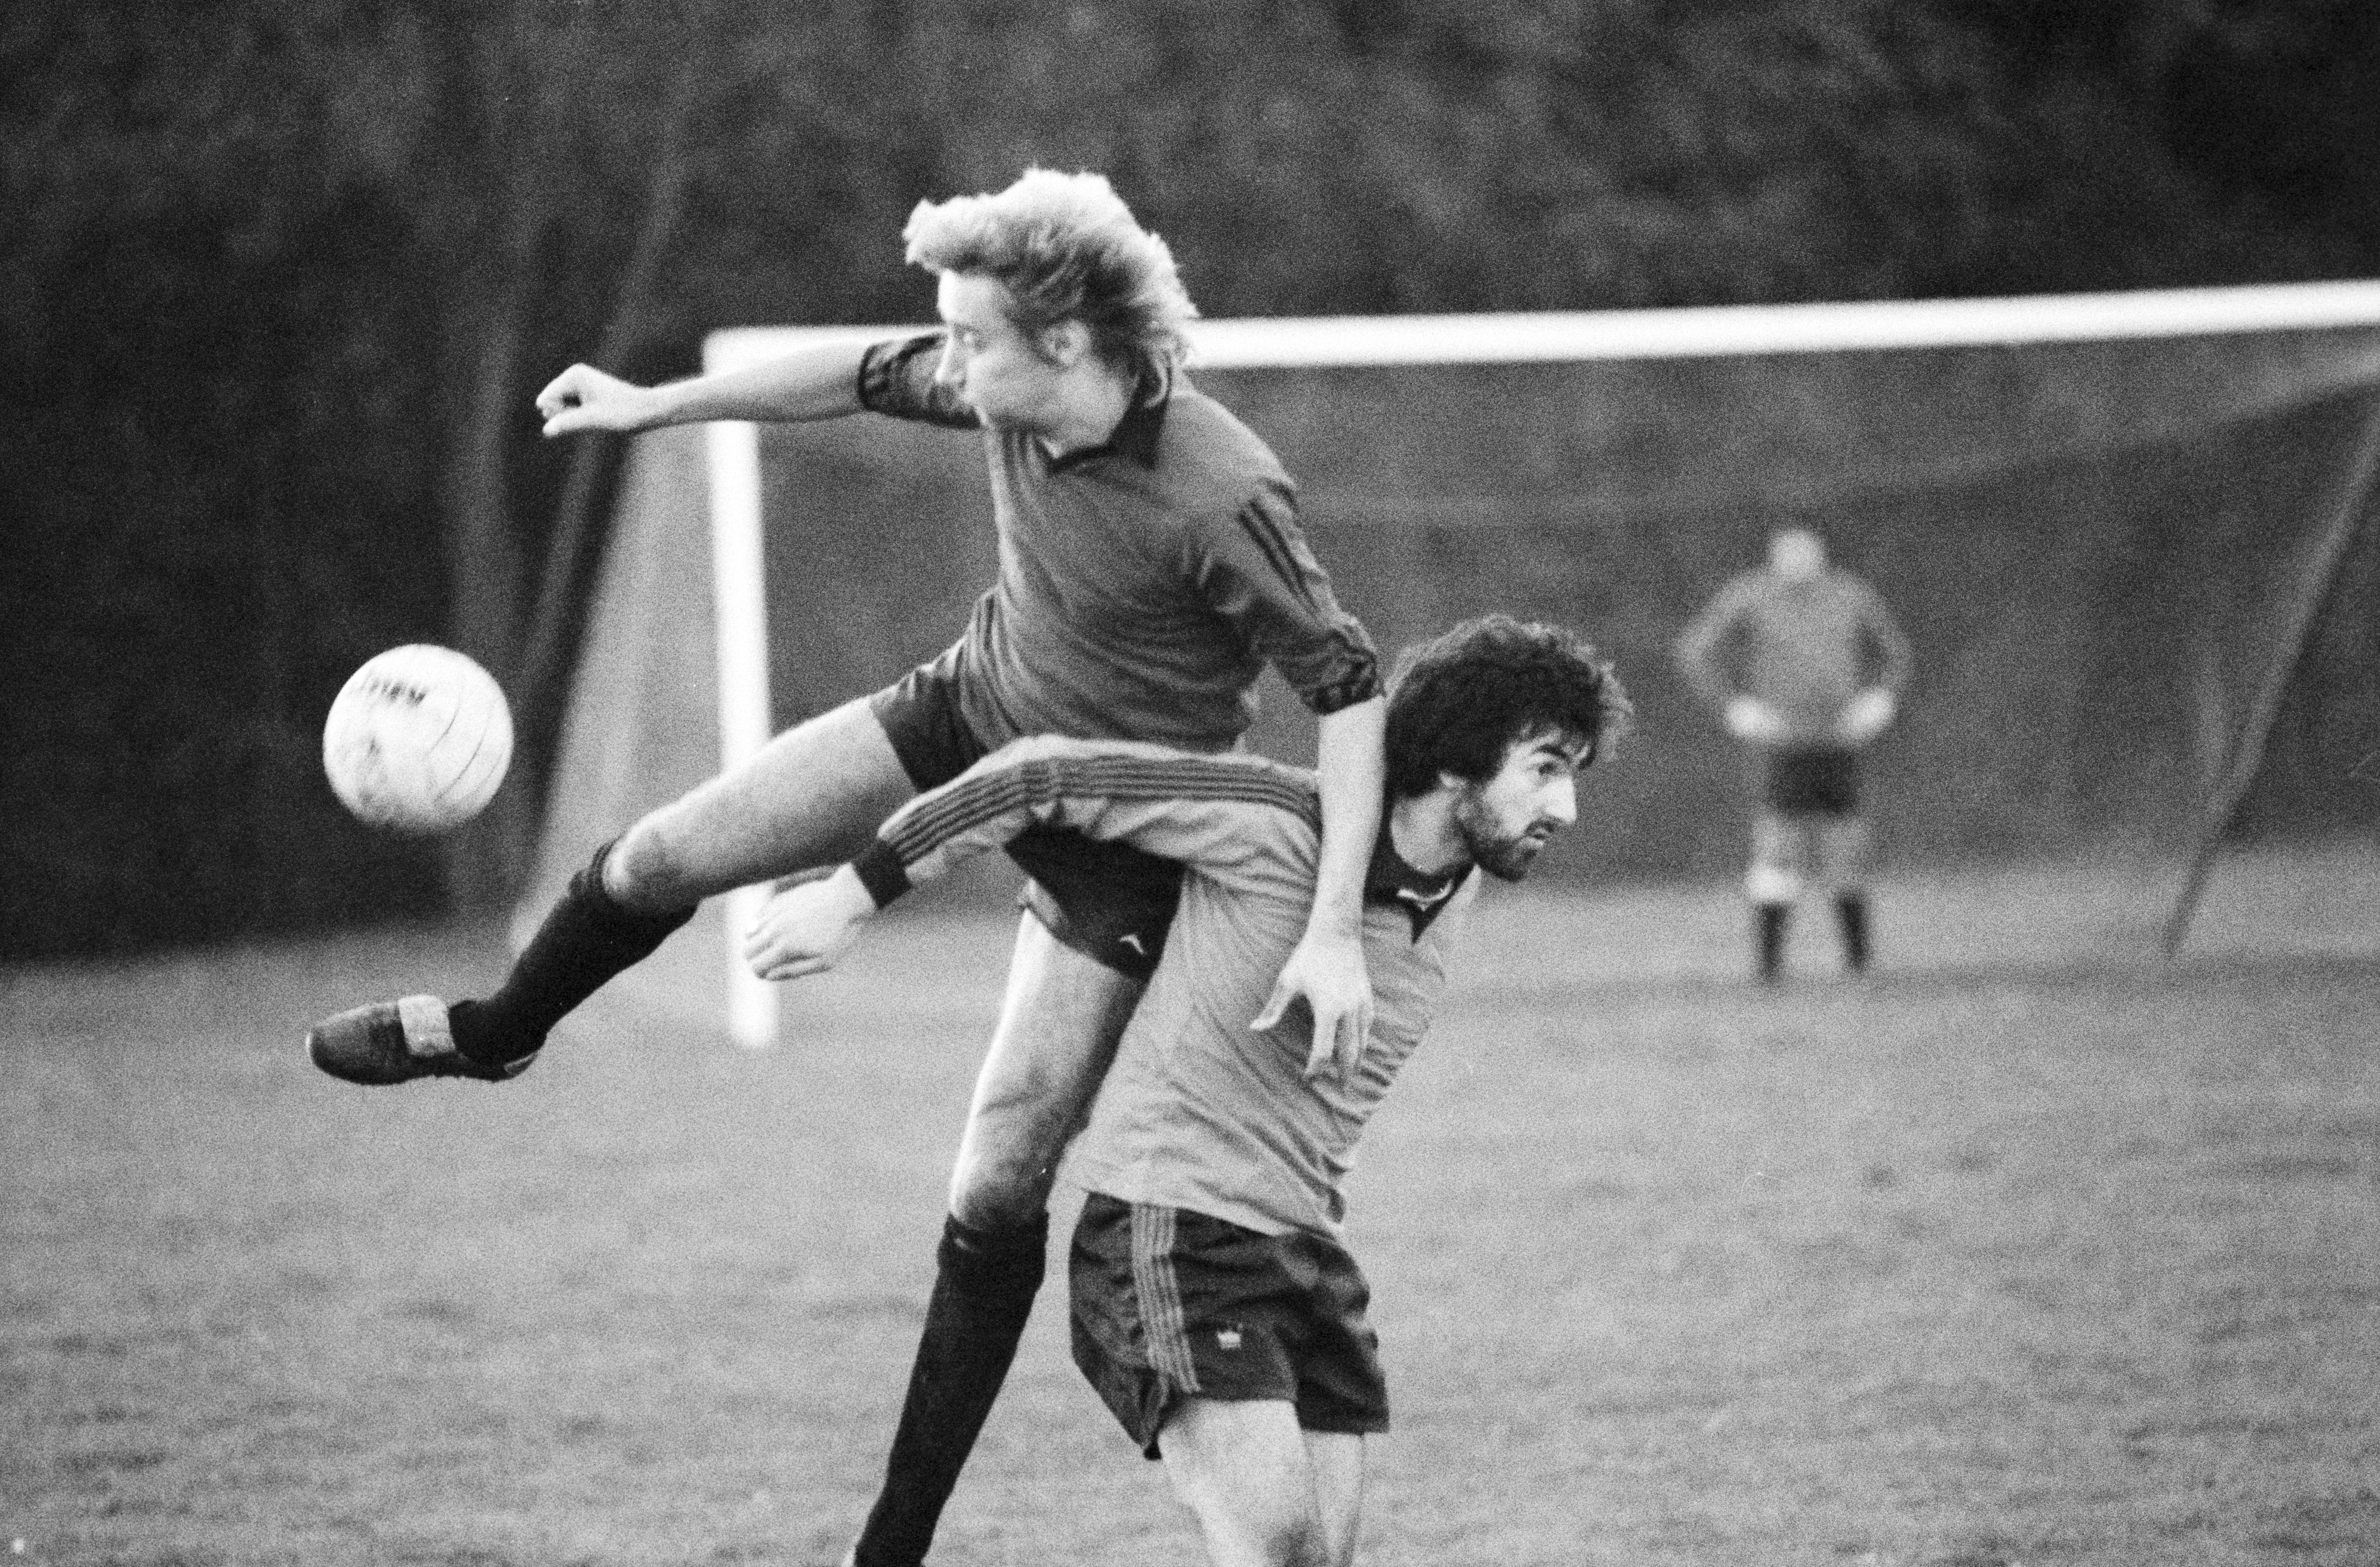 British rock singer and songwriter Rod Stewart in action during a soccer match, UK, 12th November 1979. (Photo by Evening Standard/Hulton Archive/Getty Images)